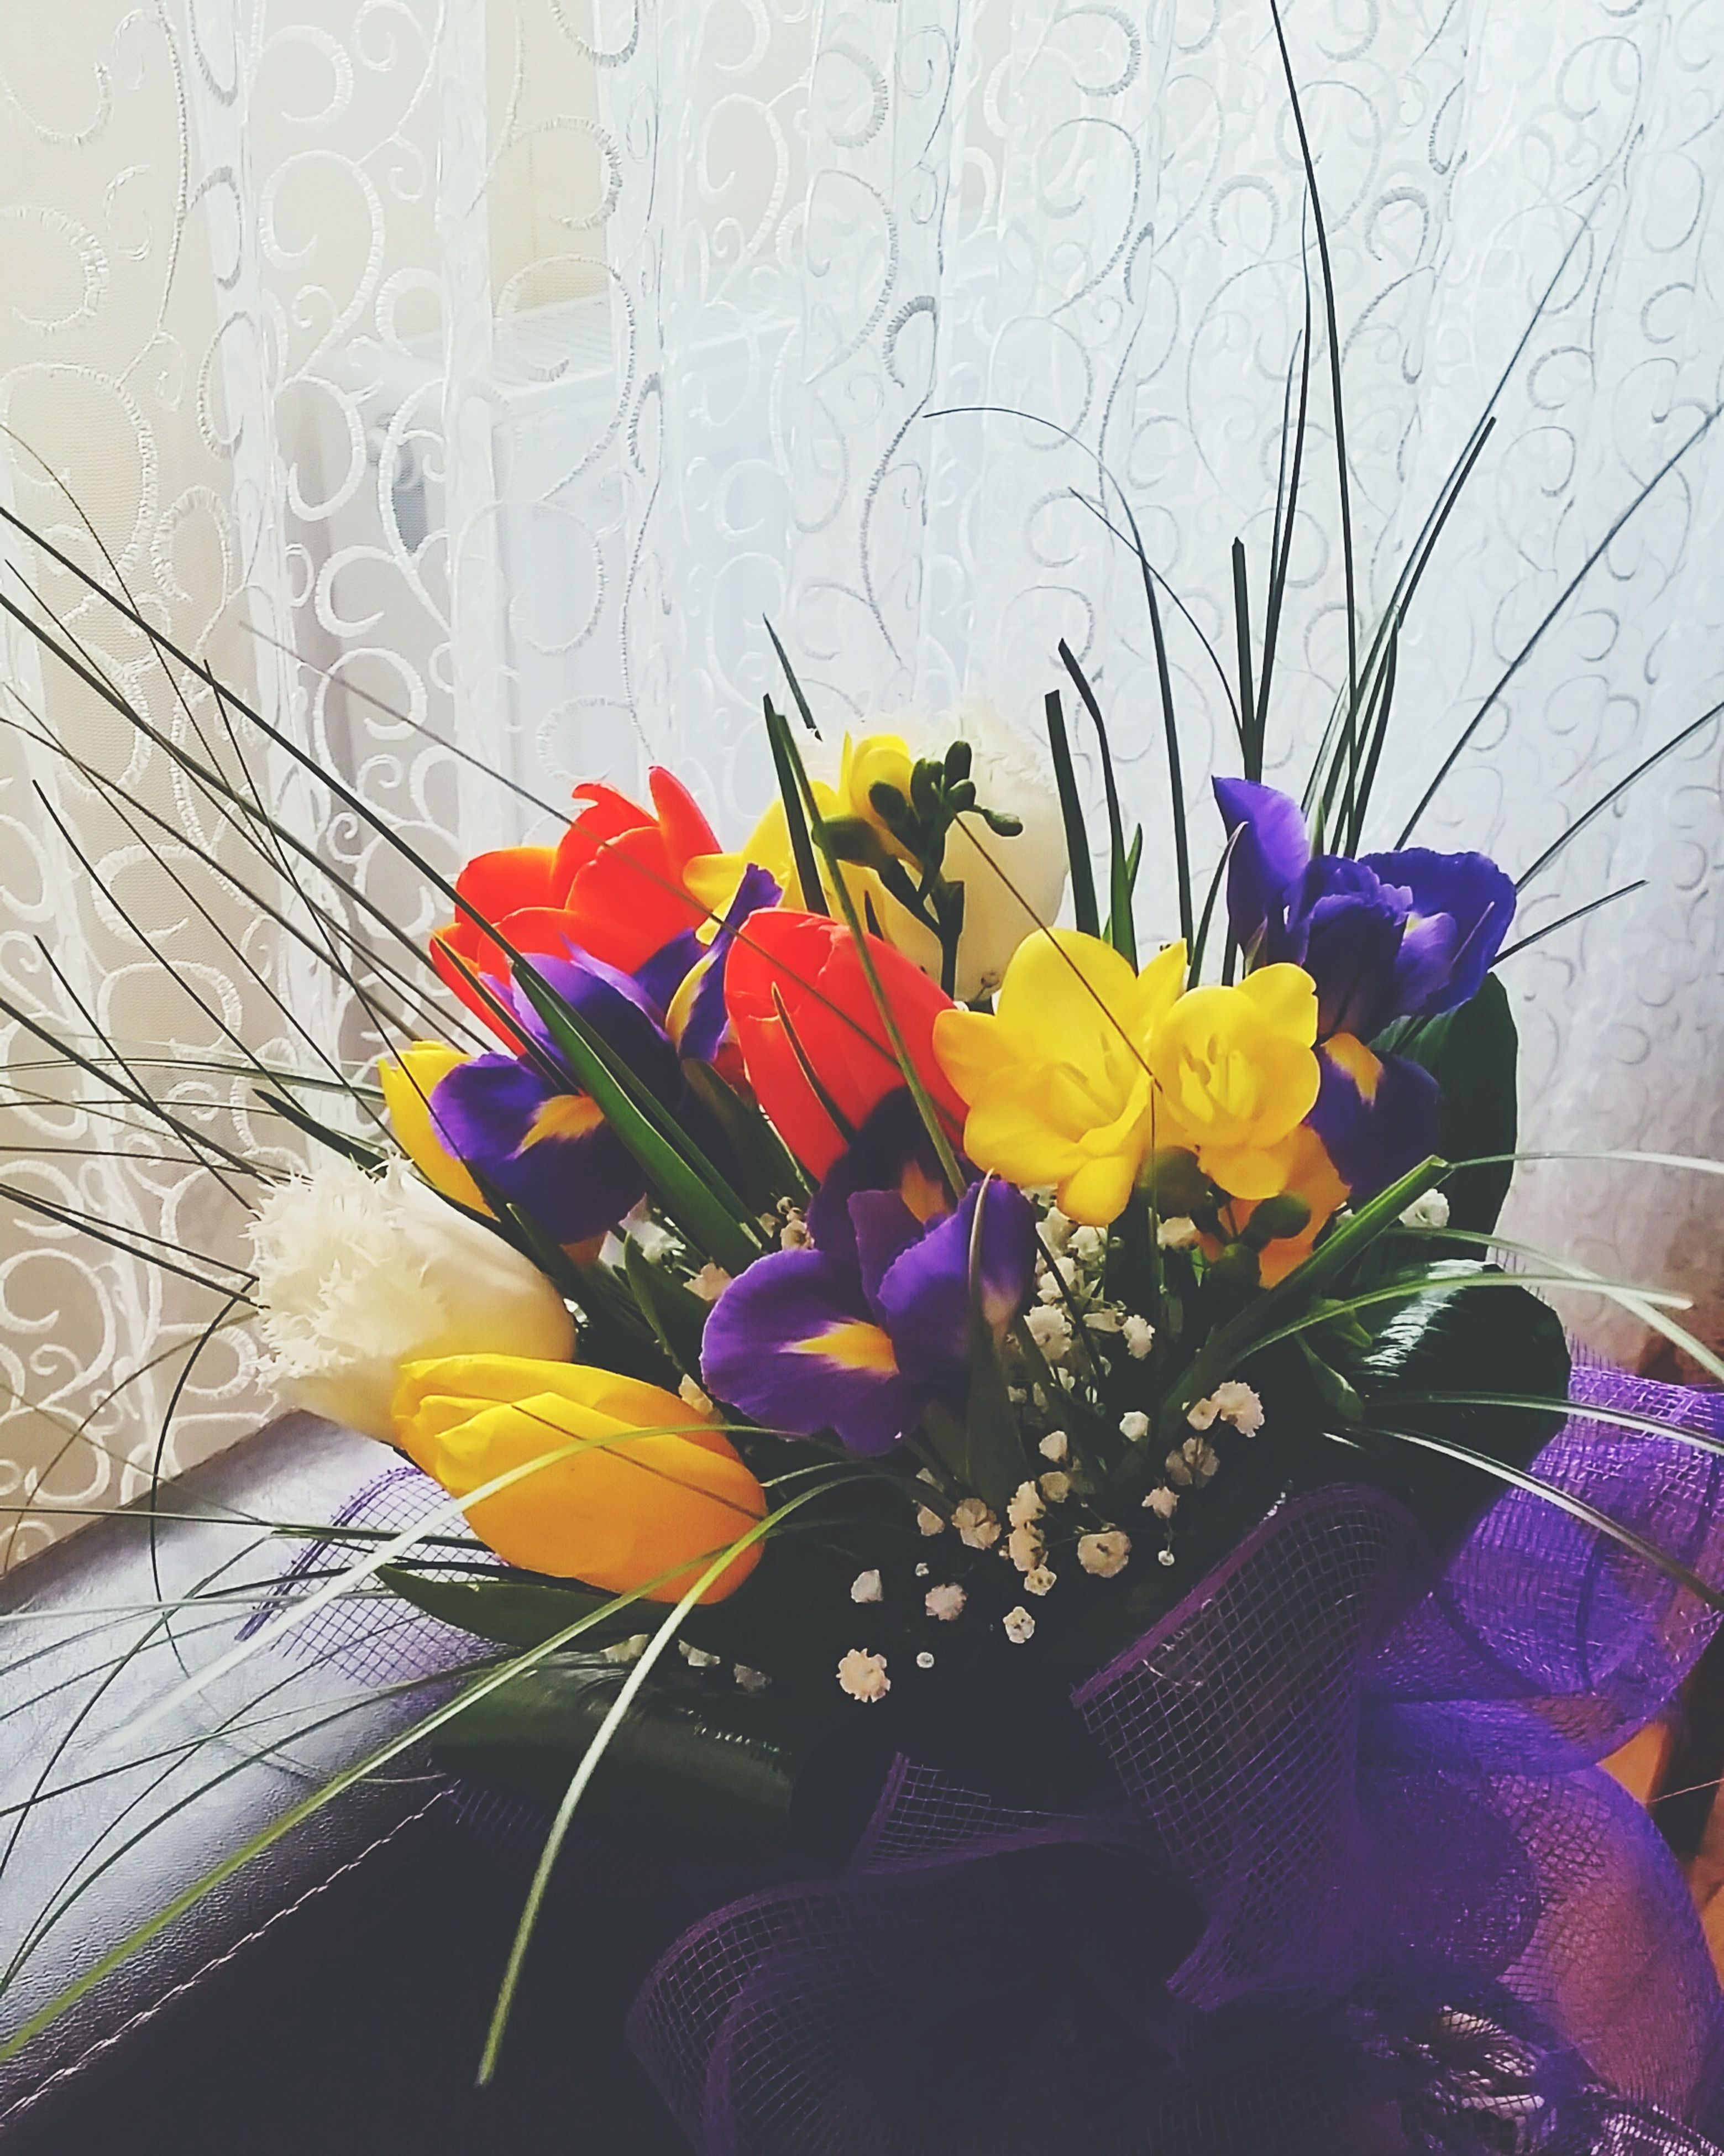 flower, fragility, petal, indoors, freshness, flower head, plant, vase, growth, wall - building feature, multi colored, close-up, yellow, home interior, decoration, blooming, nature, beauty in nature, stem, purple